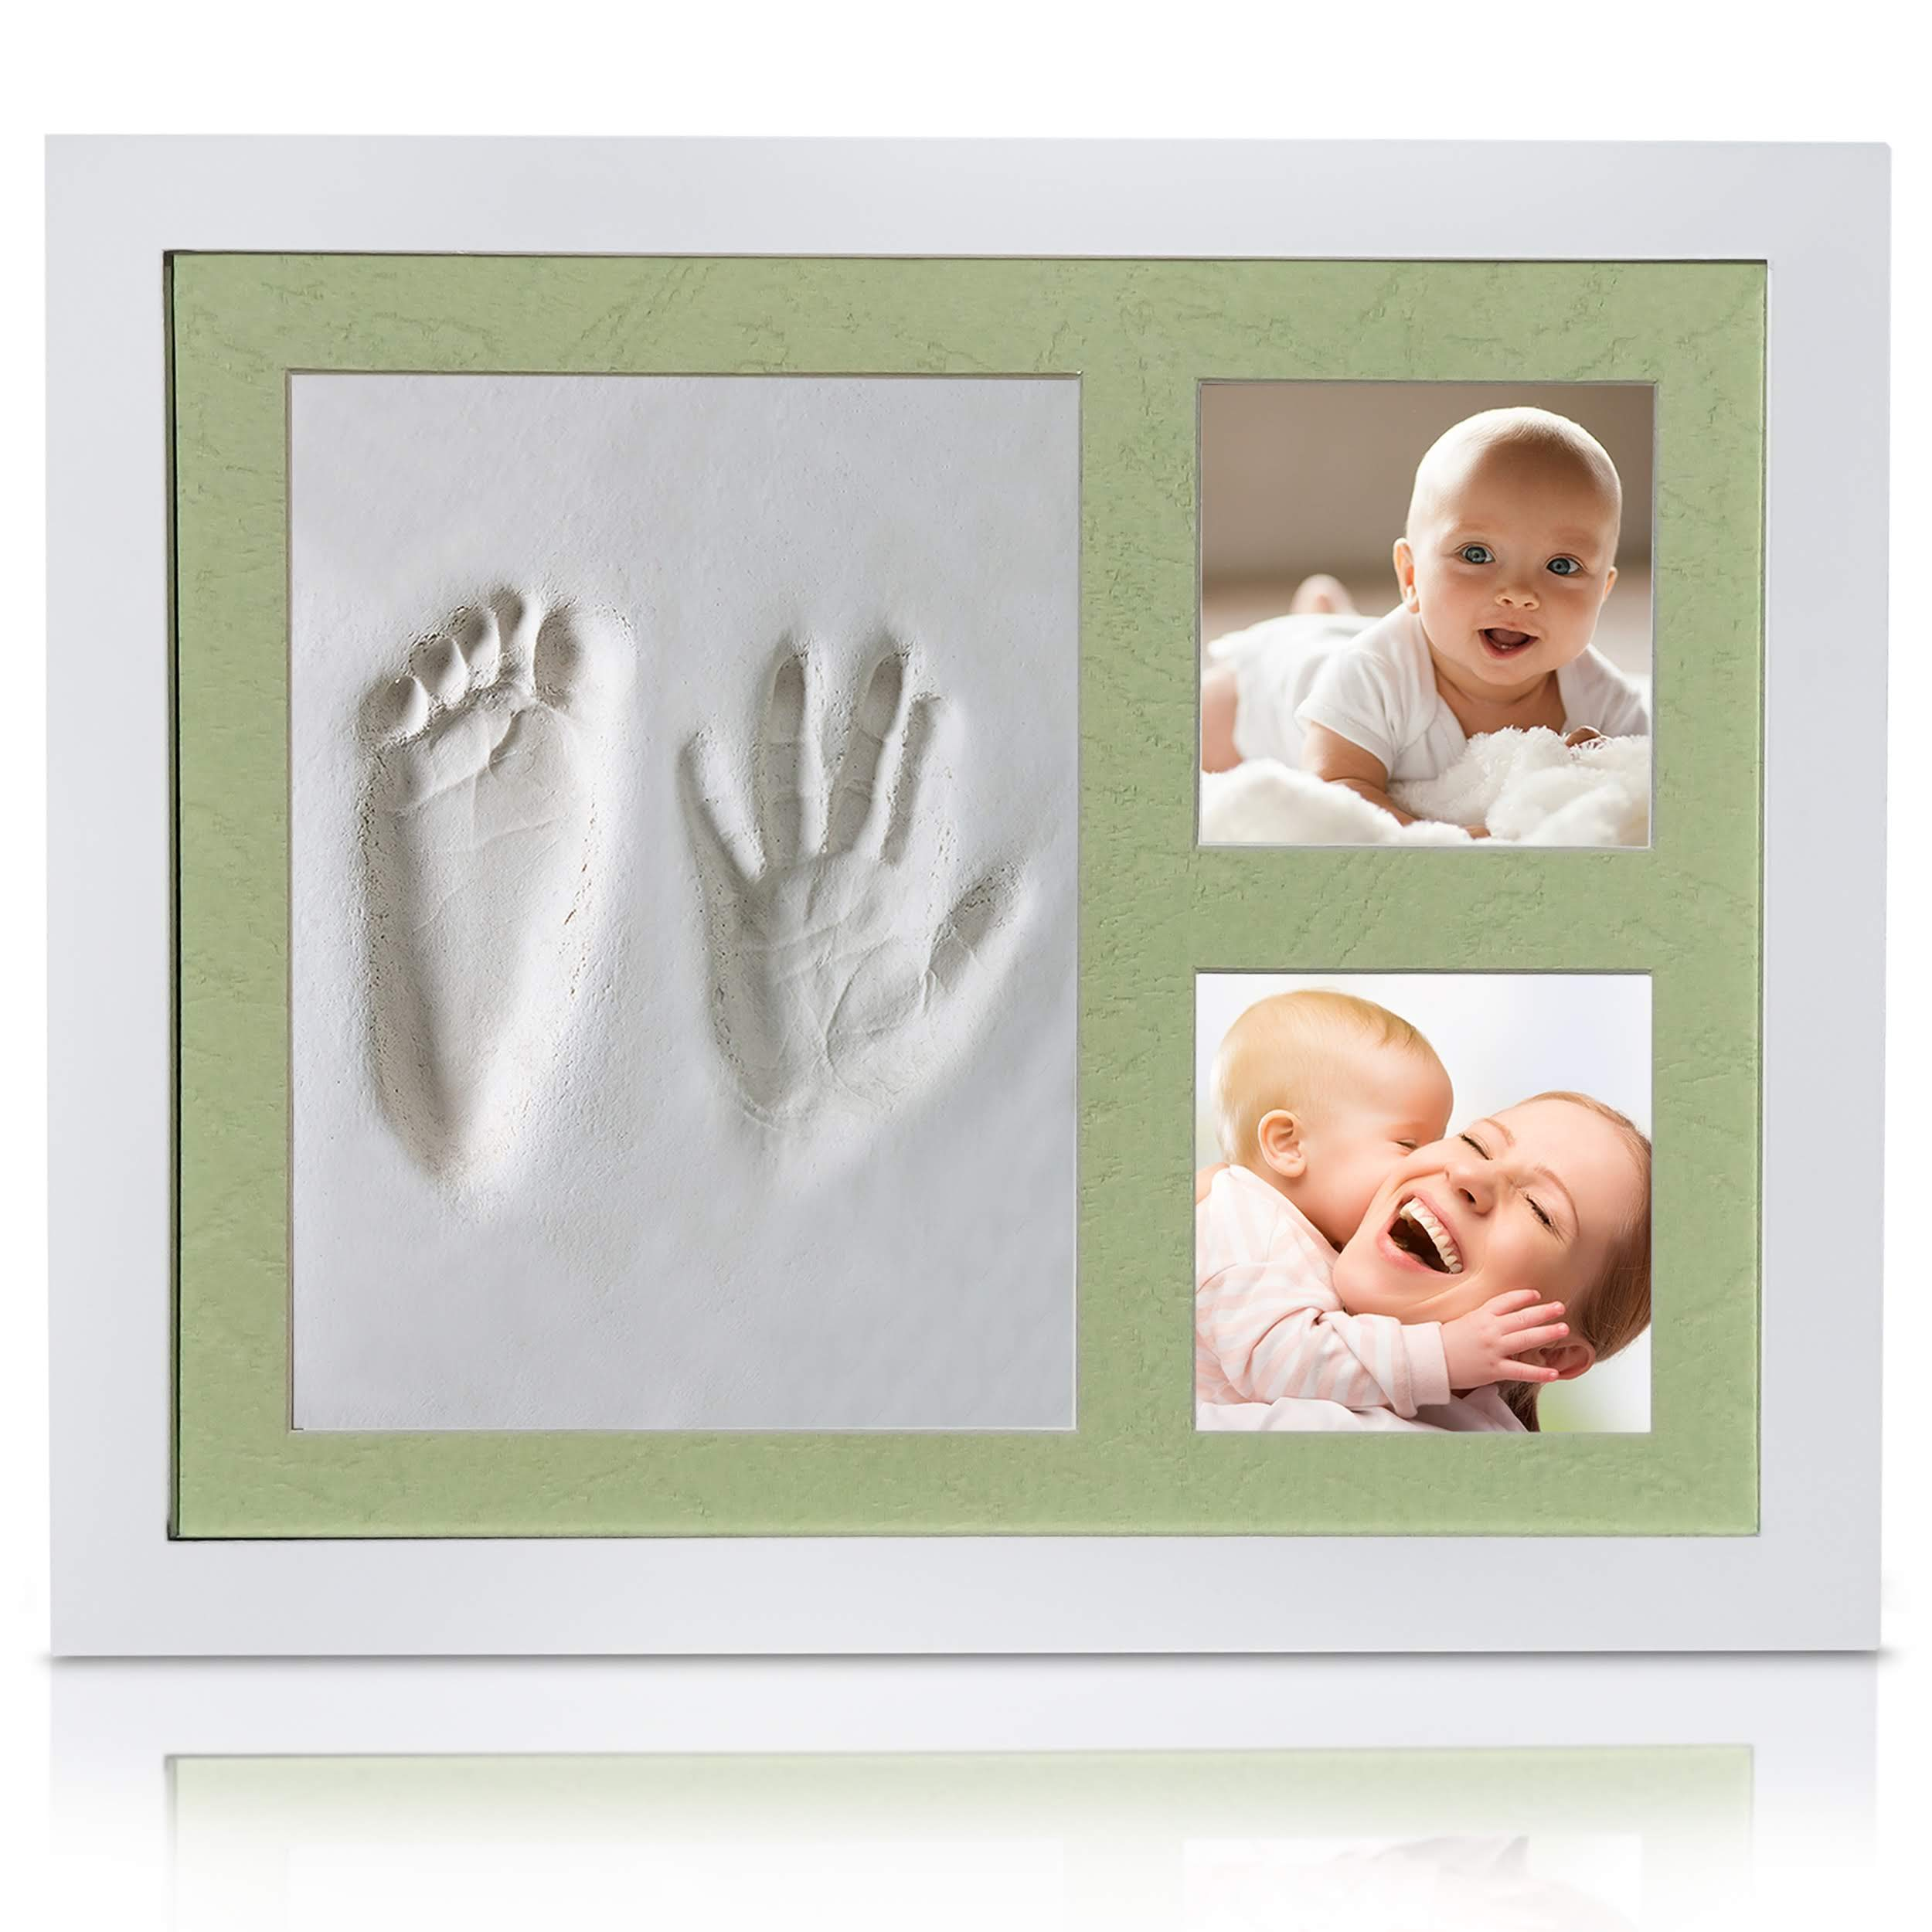 Veahma Baby Quality Clay Imprint Kit! White Wood Picture Frame|(LT Green) Mat|Non-Toxic Clay|Hand/Foot Print Kit|Baby Shower Gift for New Born Baby, Boy, Girl, Pet, Parents! Newest No Mold Version!